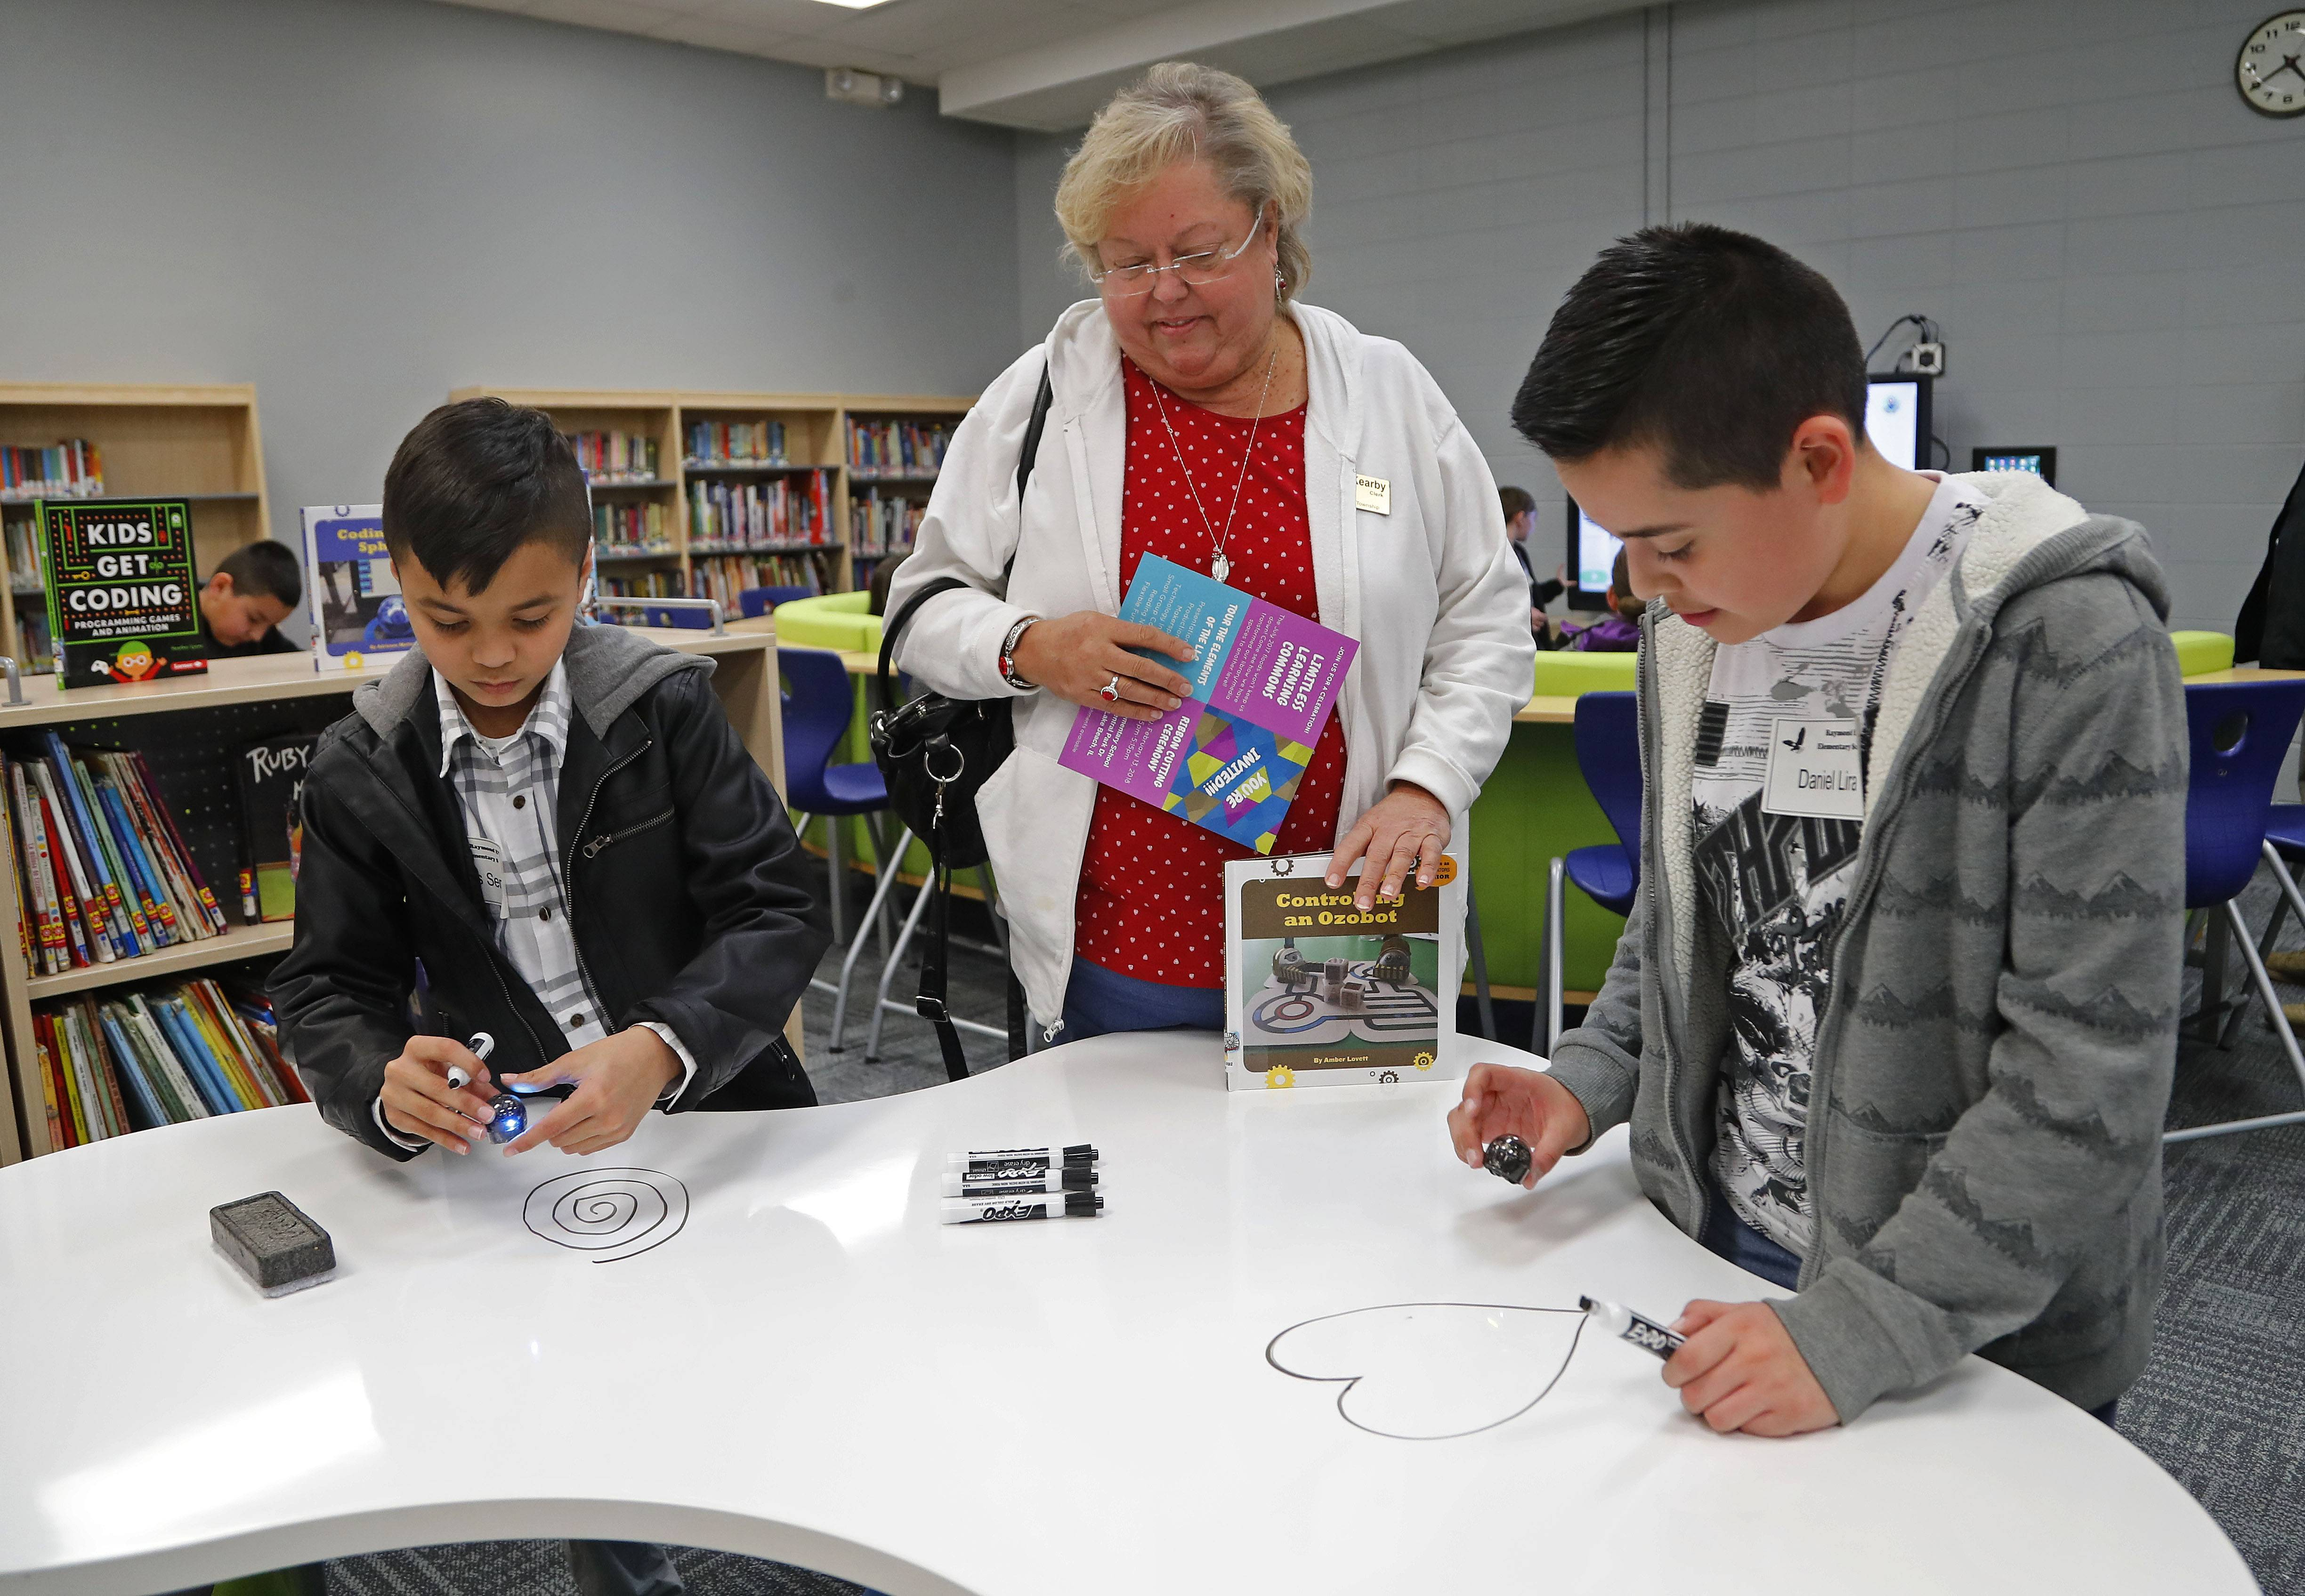 Steve Lundy/slundy@dailyherald.comEllis Elementary School students Nerkis Sena, 10, left, and Daniel Lira, 11 show Jeanne Kearby of Round Lake a dry erase table during a celebration to unveil their new Limitless Learning Commons Tuesday in Round Lake Beach.